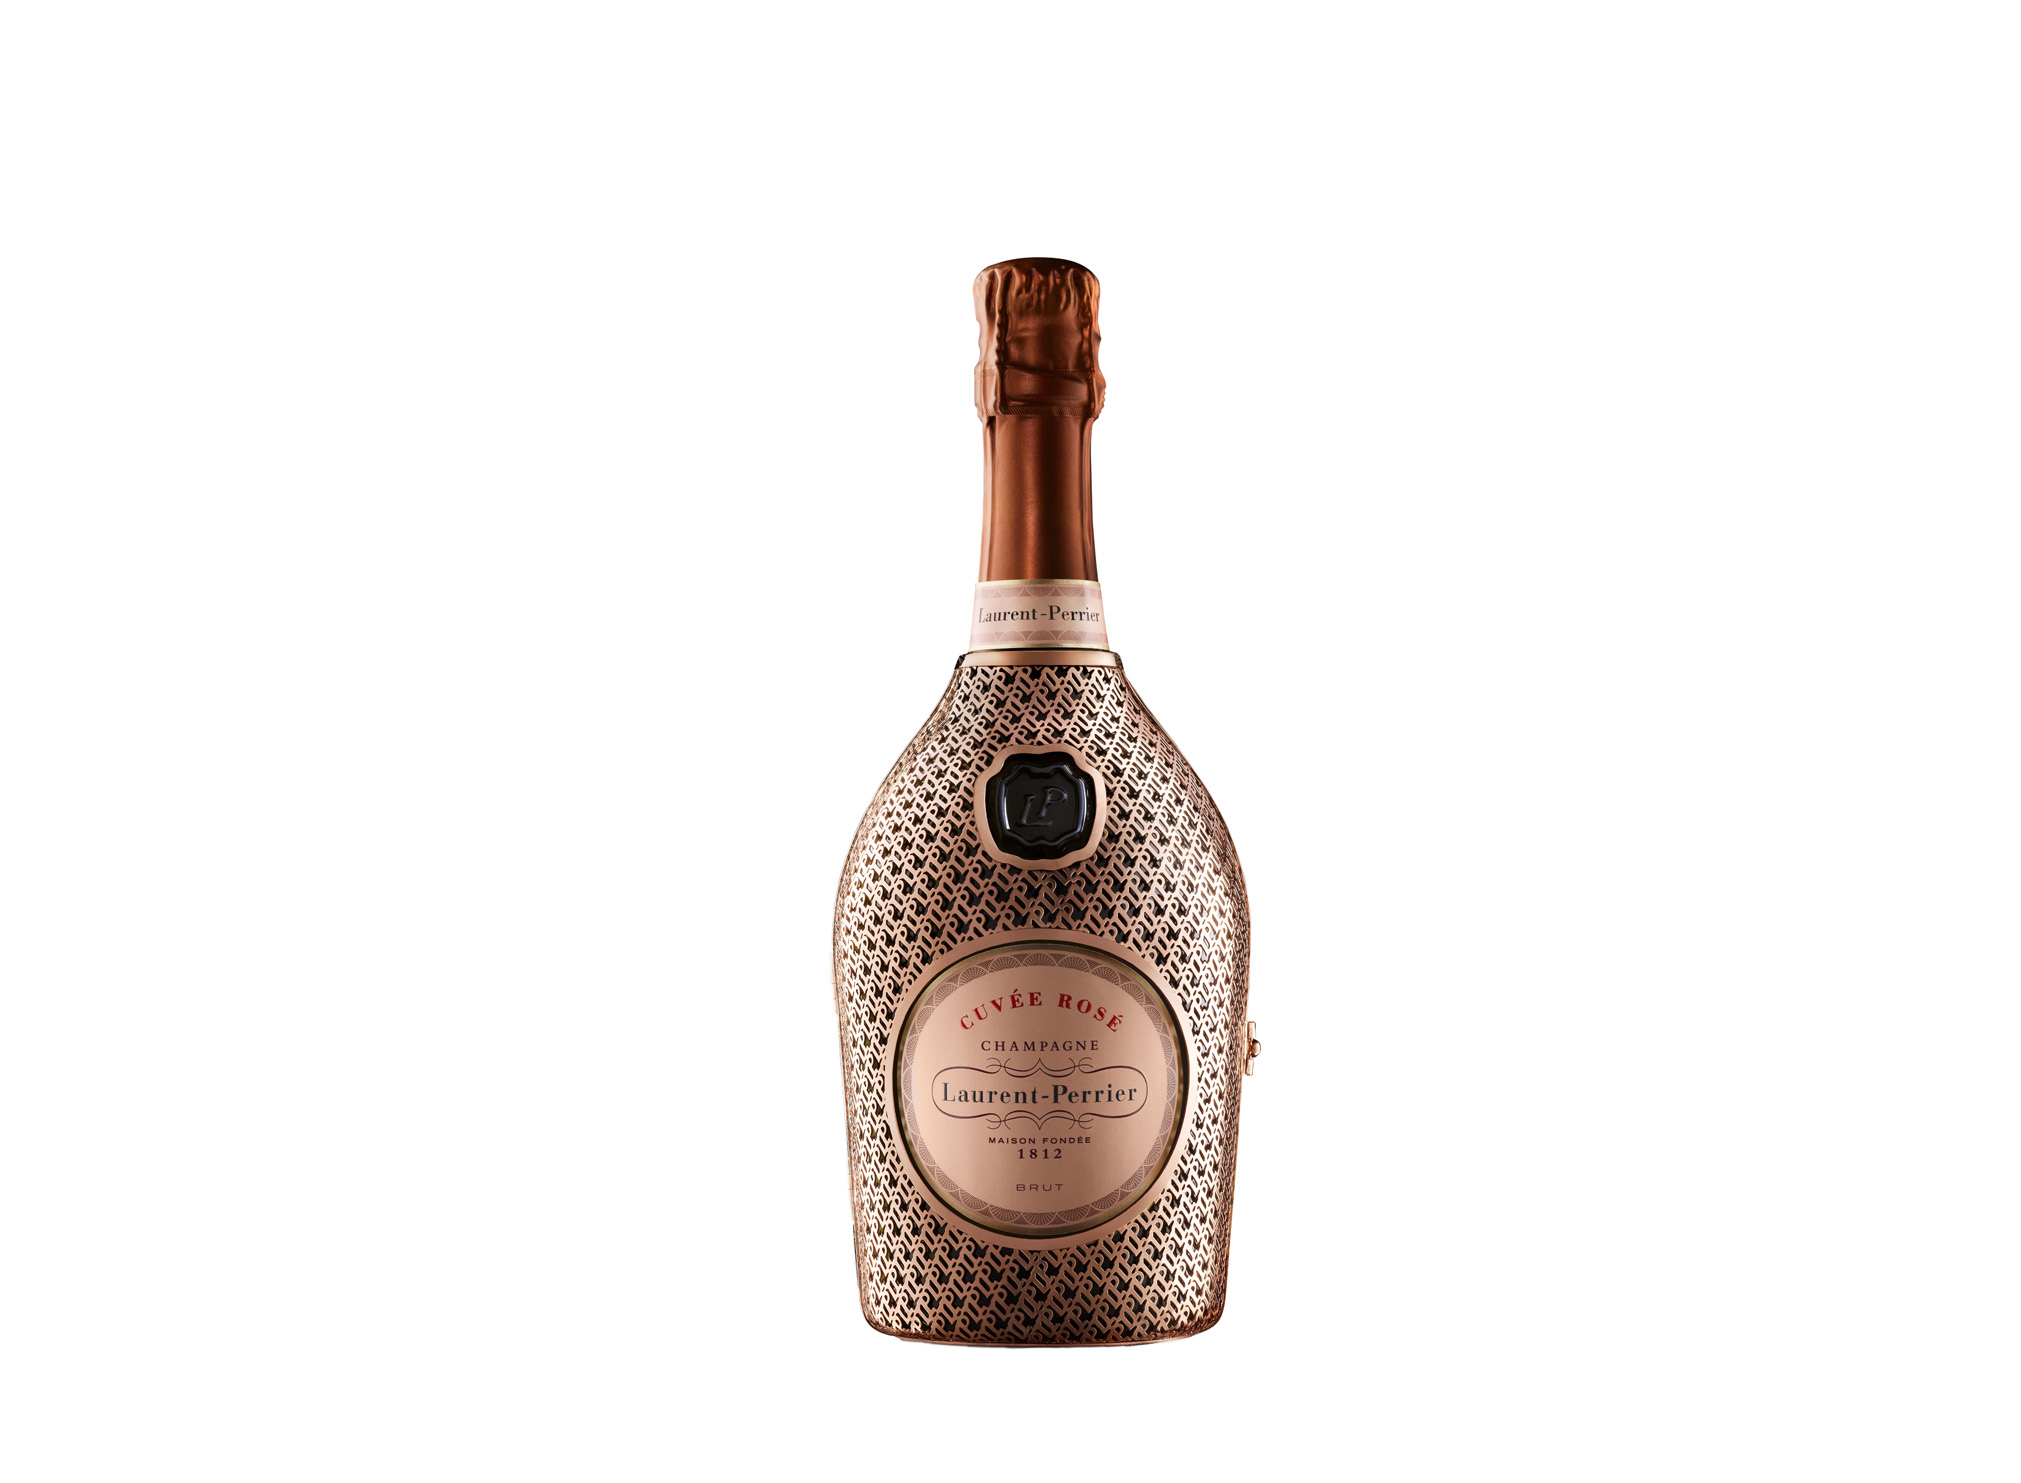 Lauent-Perrier Rose NV Champagne Metal Robe Limited Edition (Laurent-Perrier/PA)